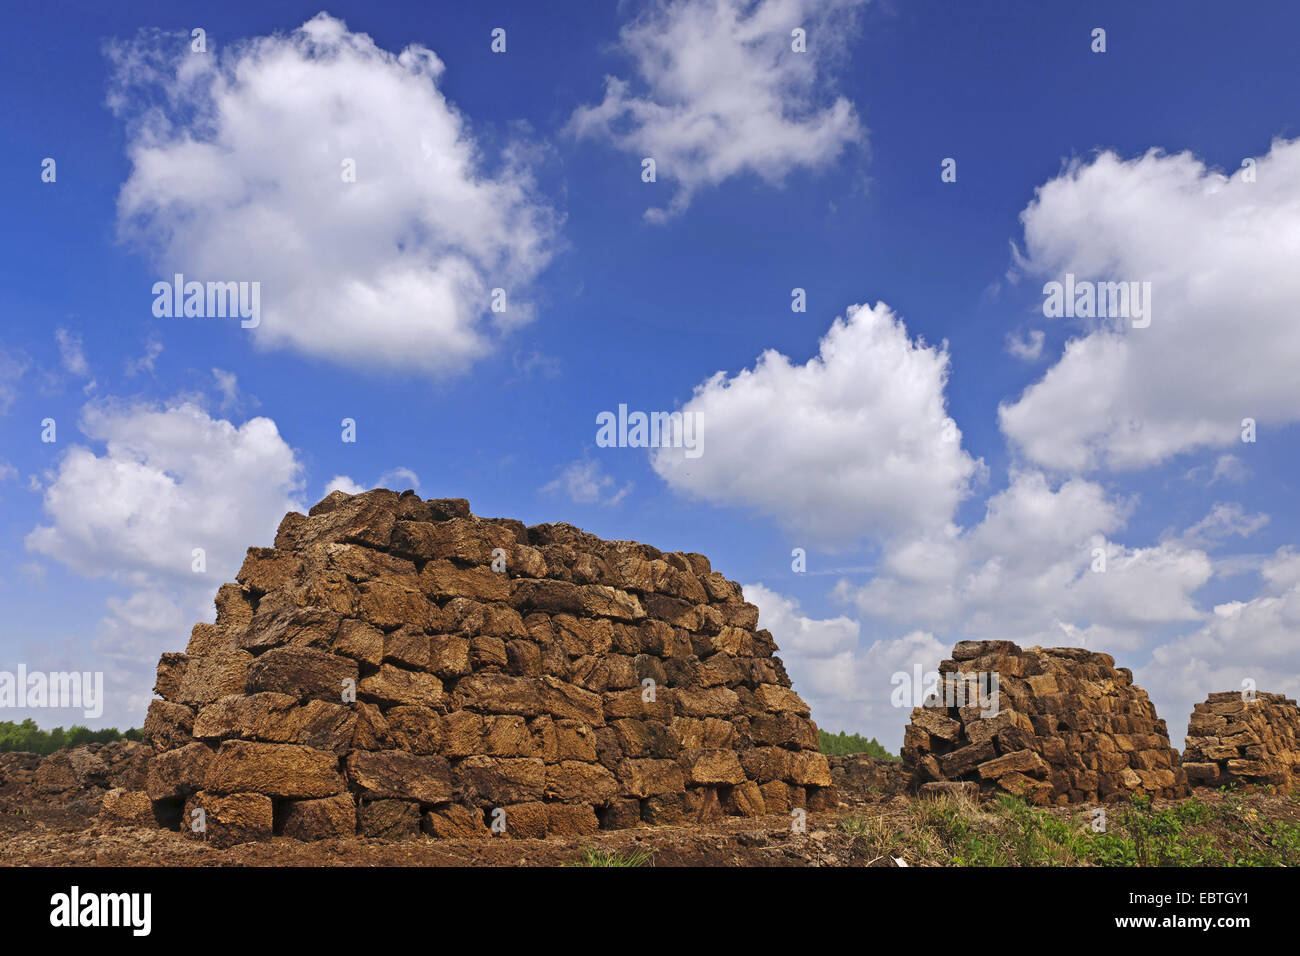 stacks of bales of peat at the peat extraction at the Goldenstedter Moor, Goldenstedt, Niedersachsen - Stock Image